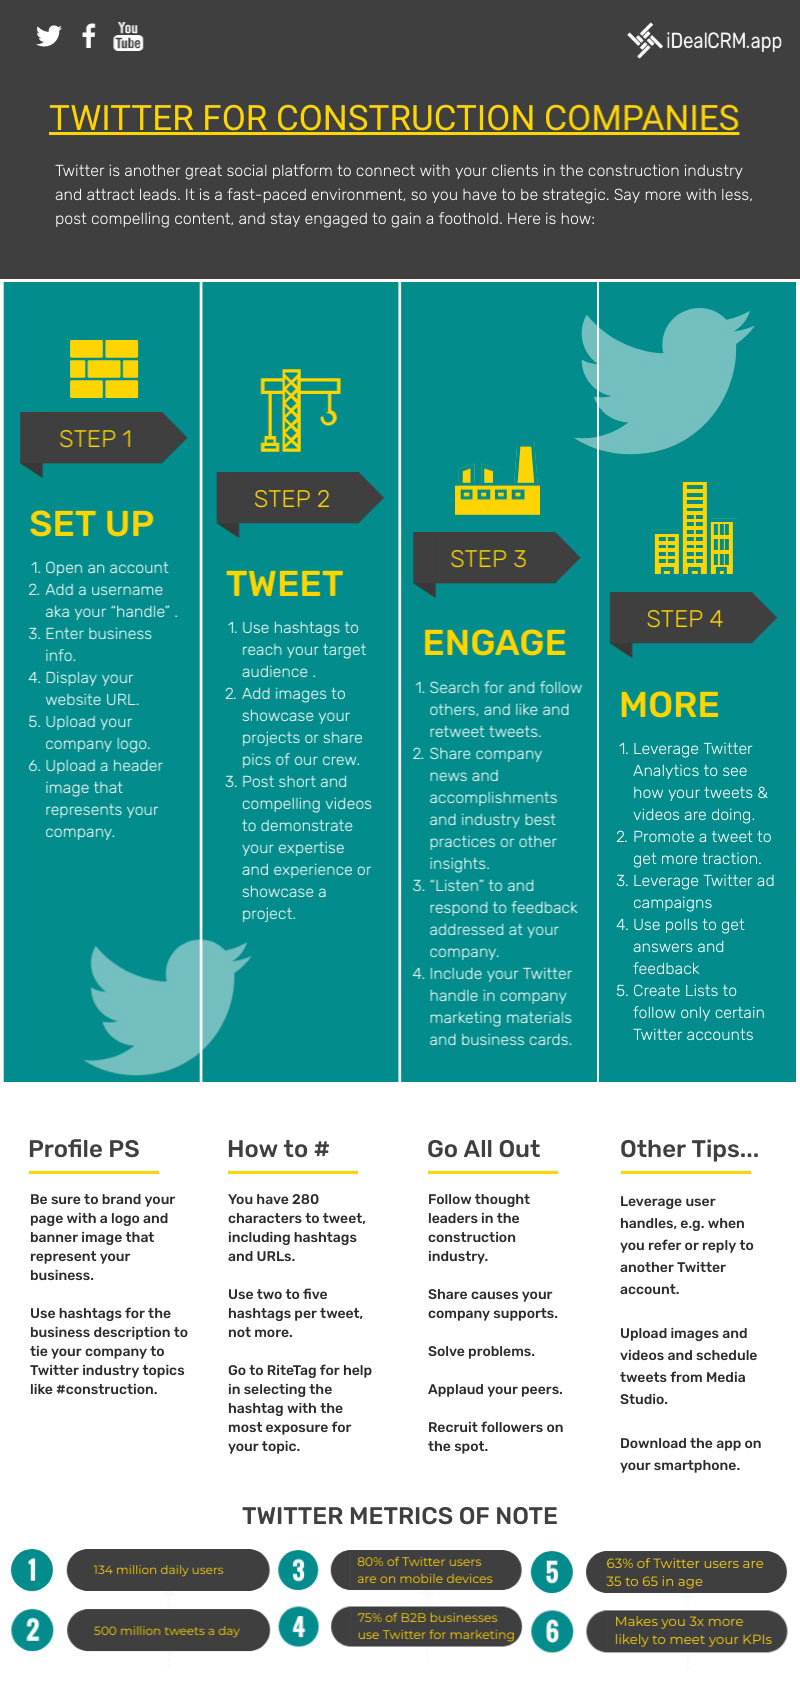 Twitter For Construction Companies Tips Tricks Dos And Don Ts